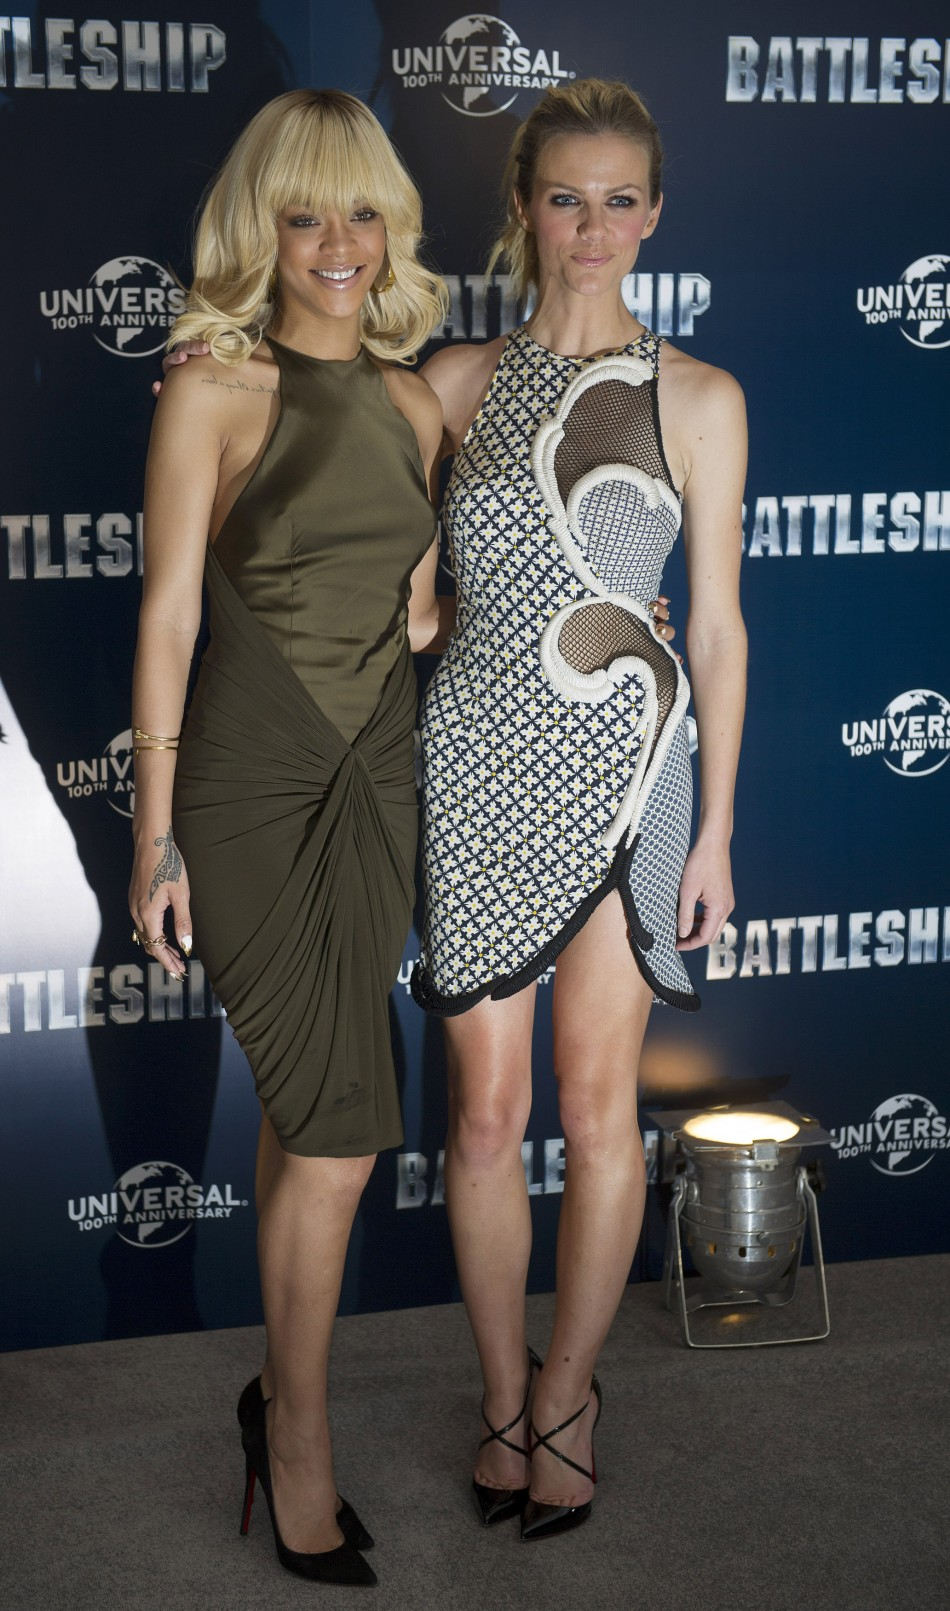 Singer Rihanna and model Brooklyn Decker pose for a photograph at a photocall to promote the film Battleship, in a hotel in central London